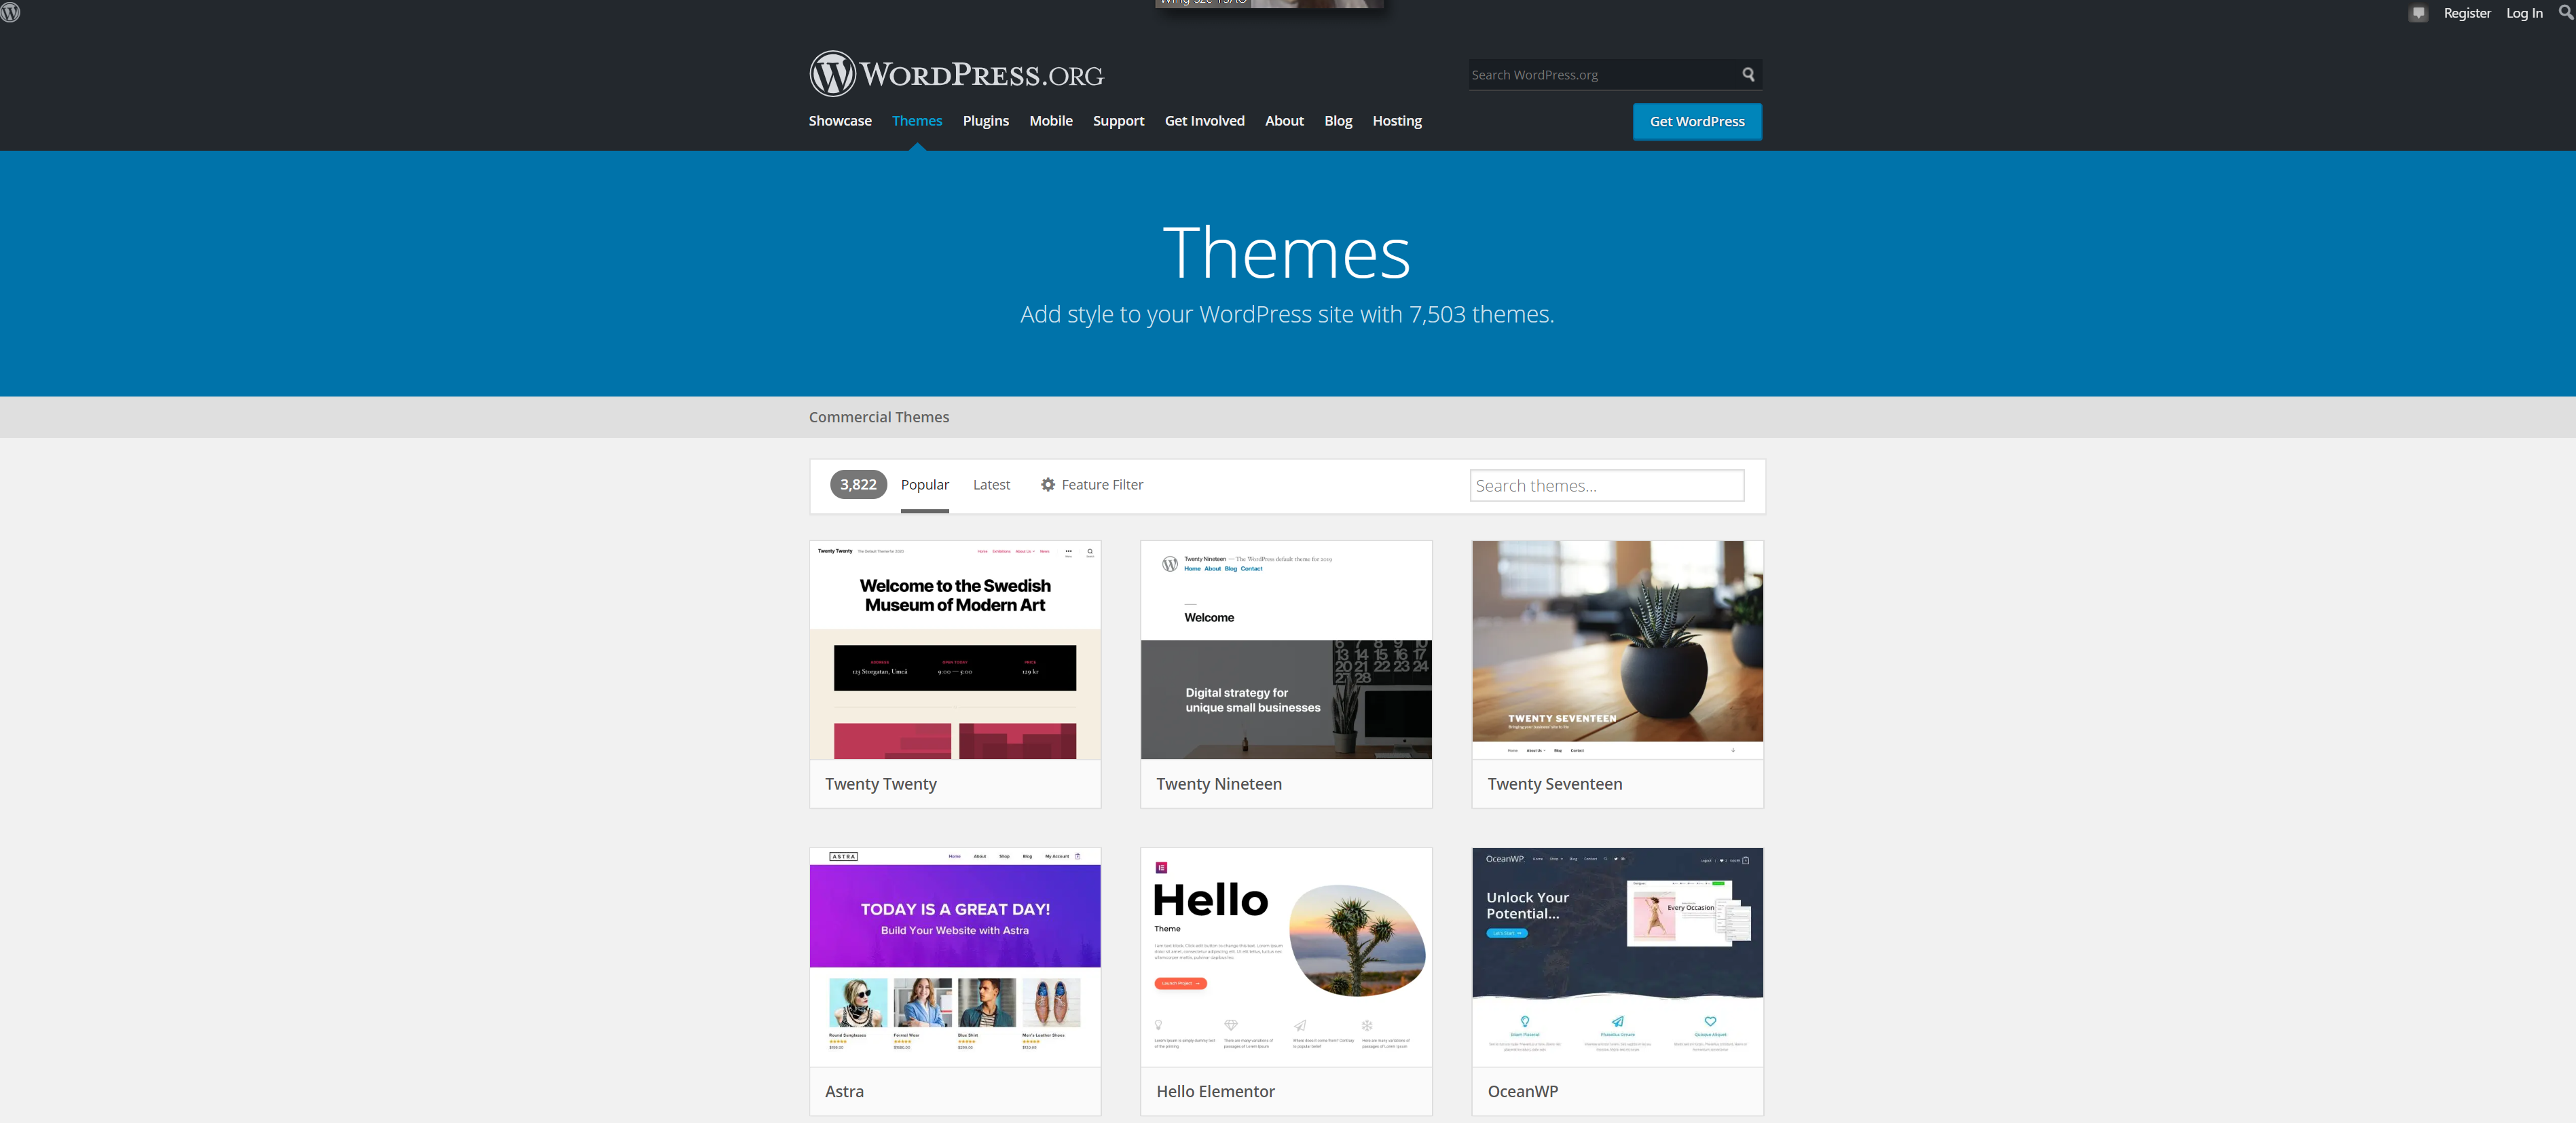 Themes hosted on wordpress.org